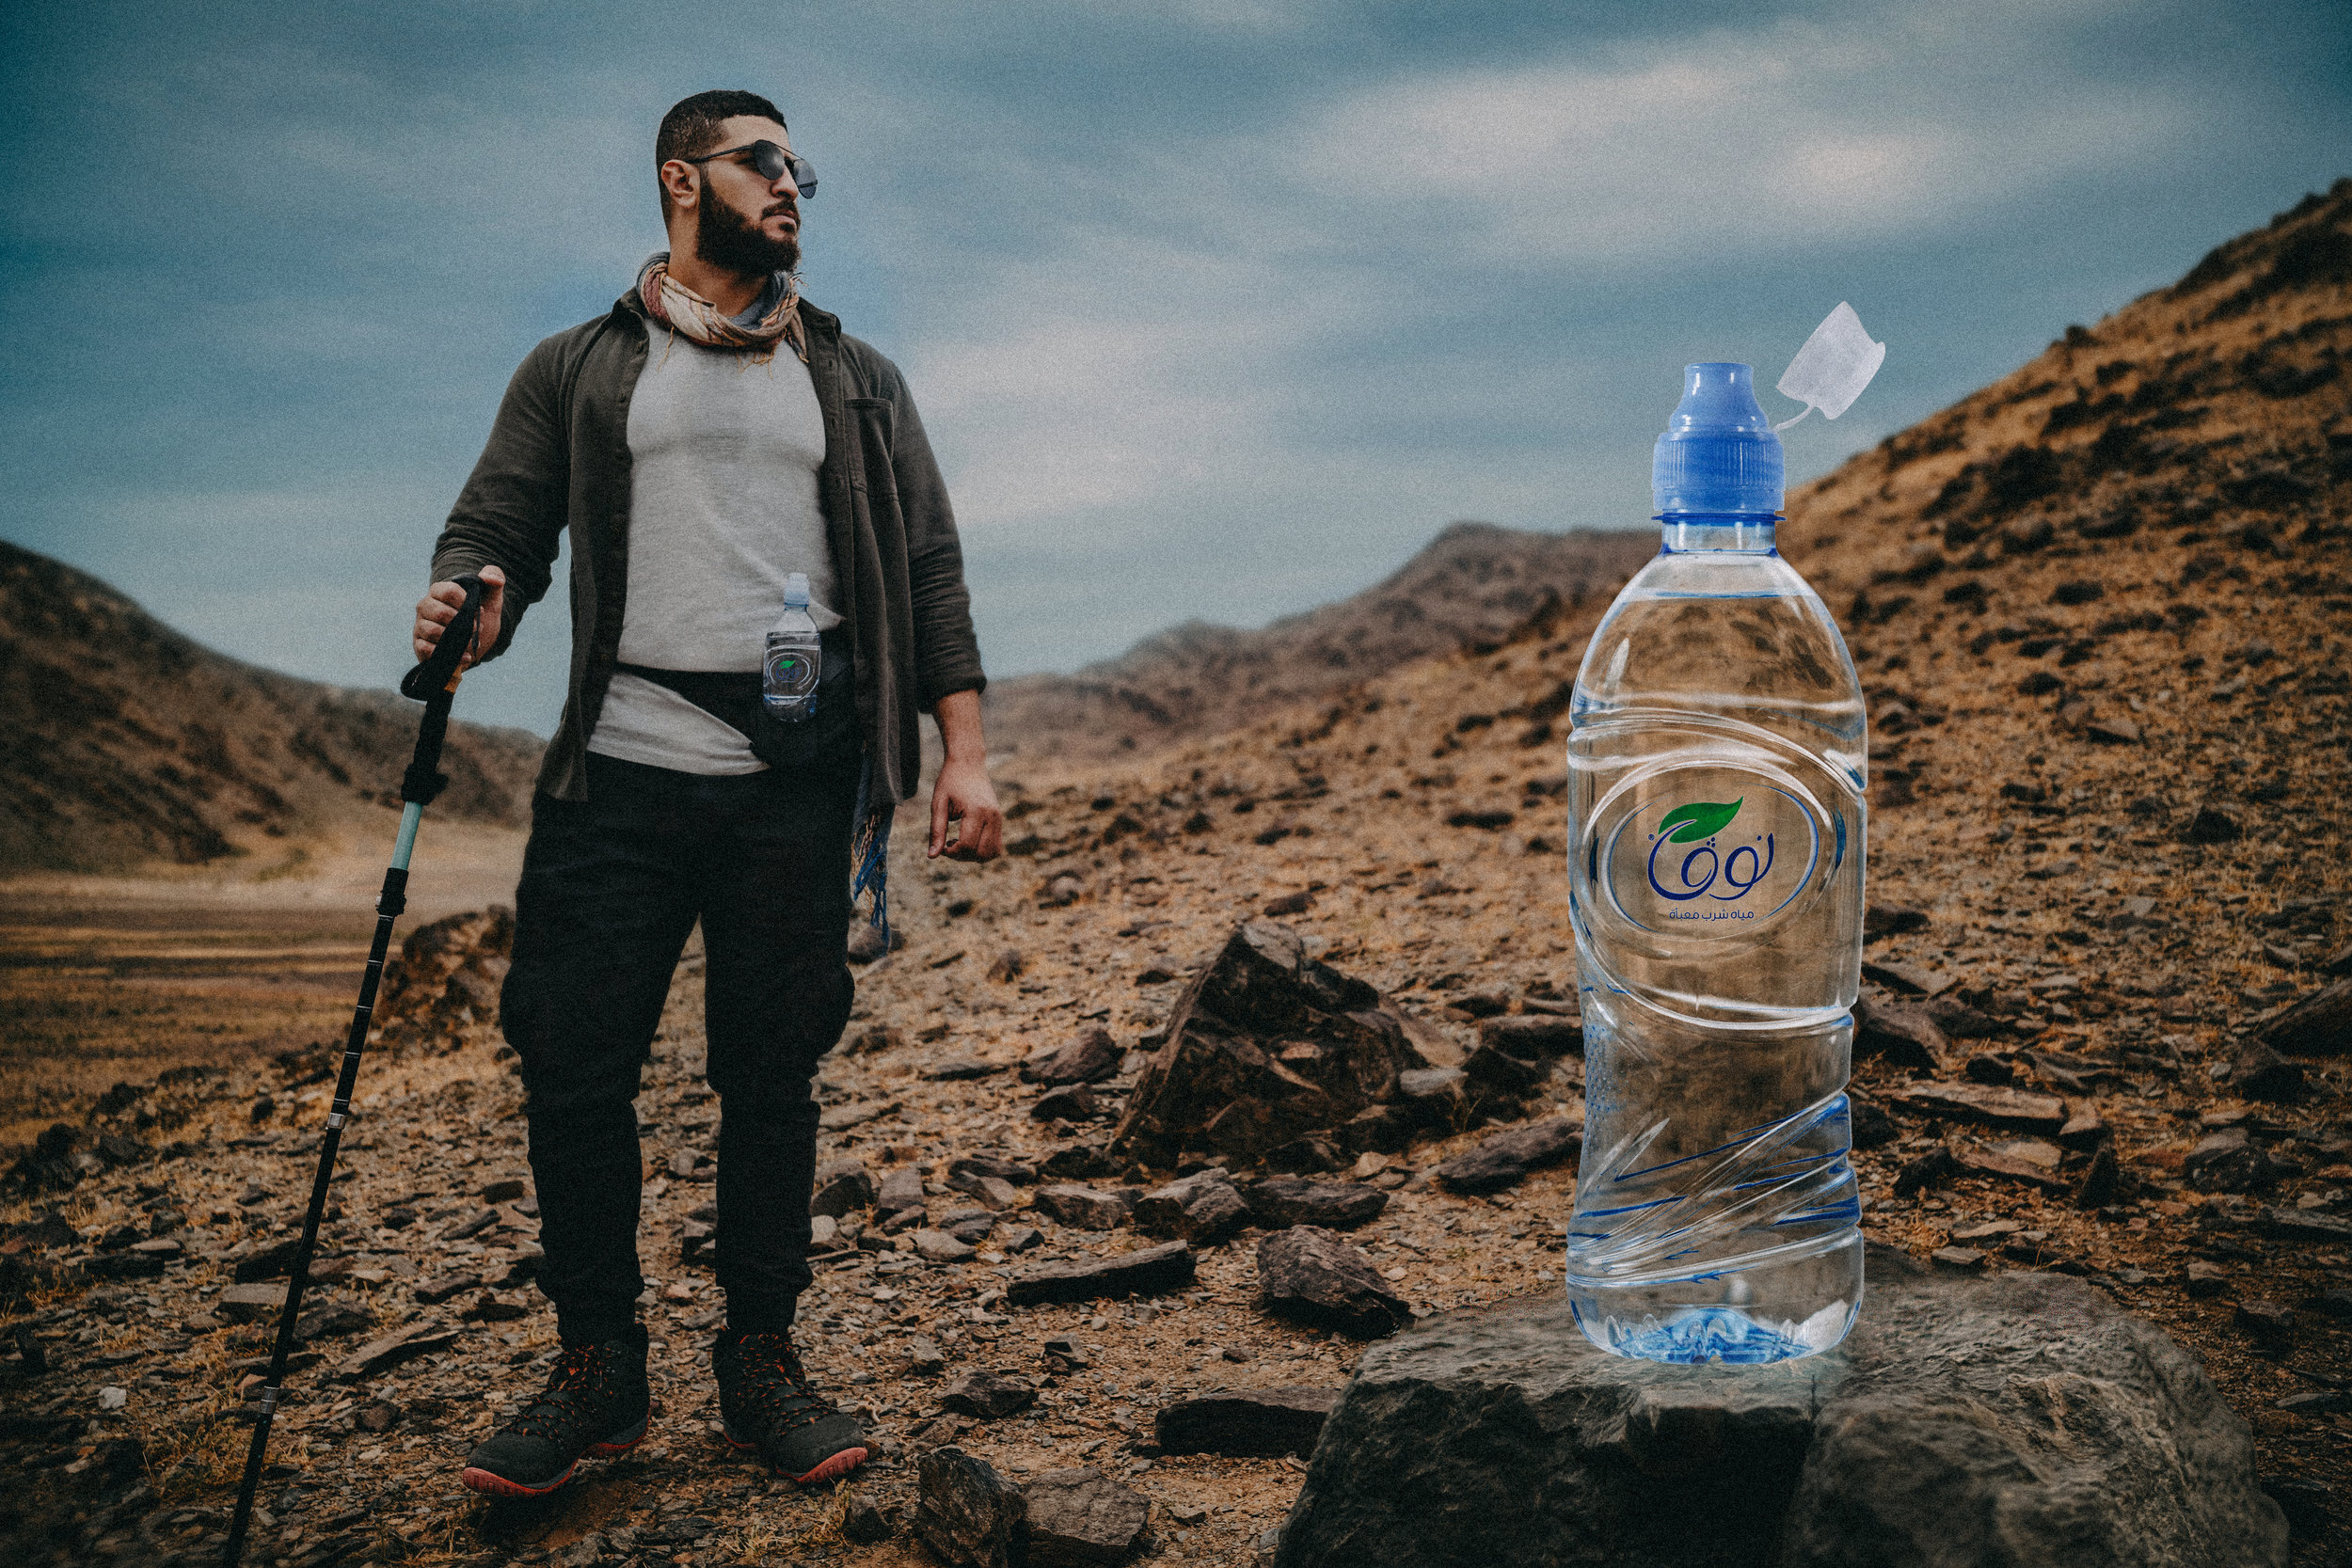 hiking-with-bottle-web.jpg